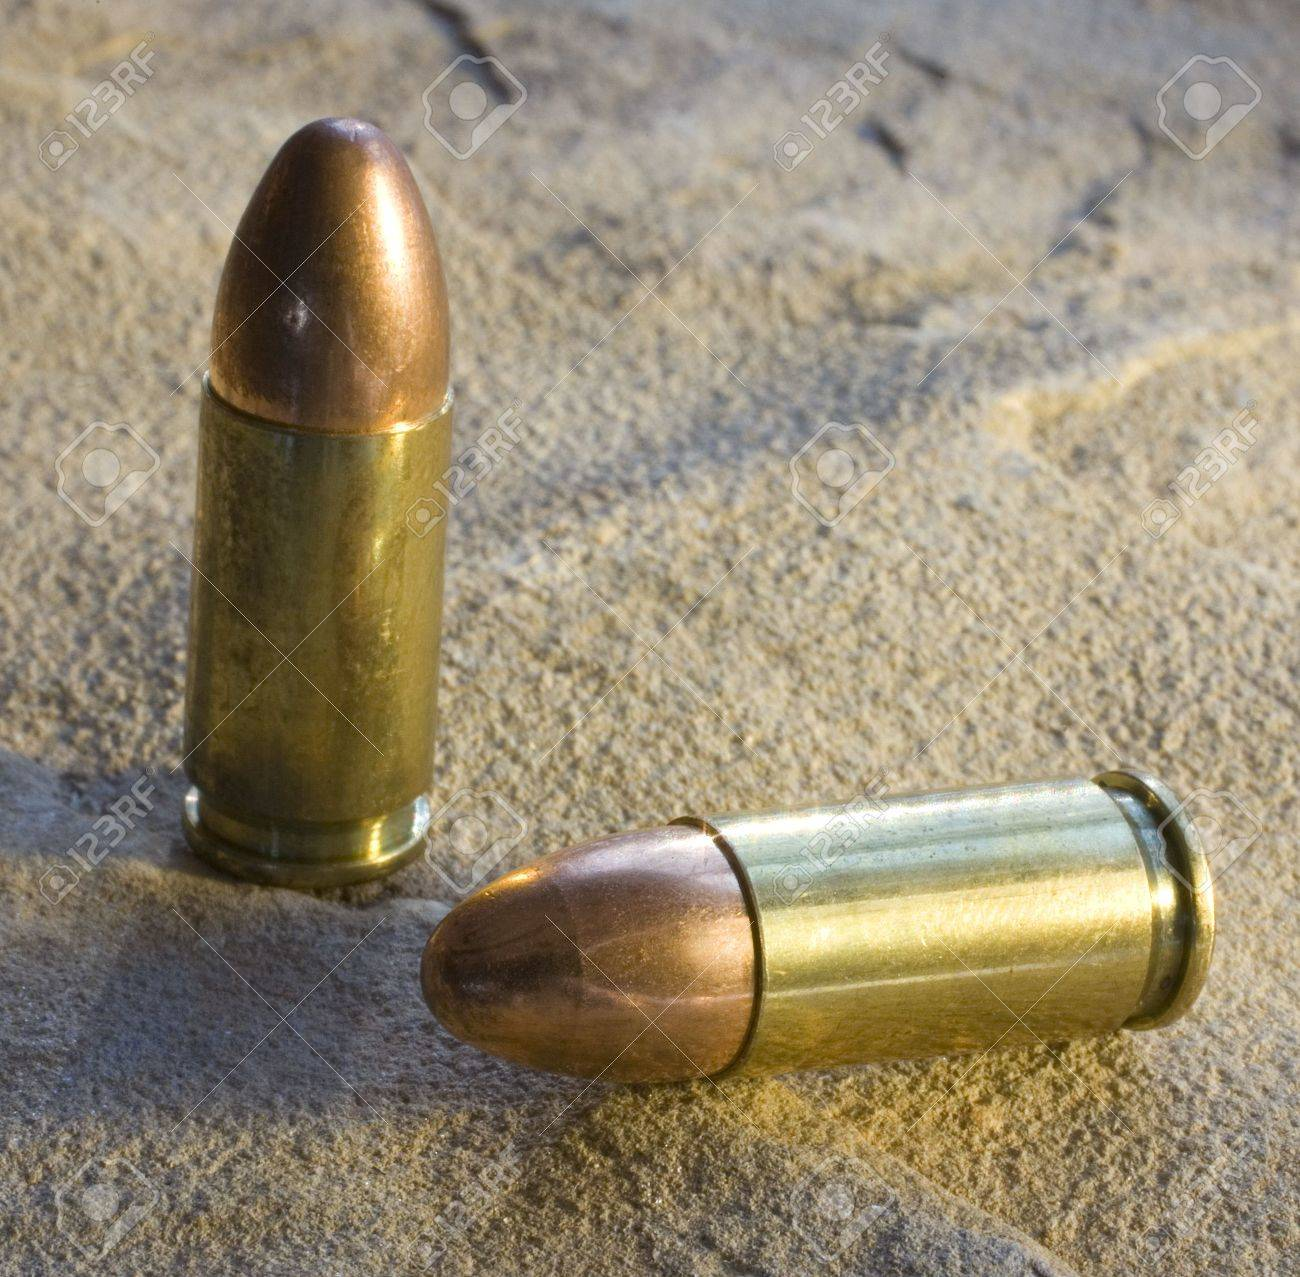 Full Metal Jacketed Bullets For A 20 Mm Stock Photo, Picture And ...